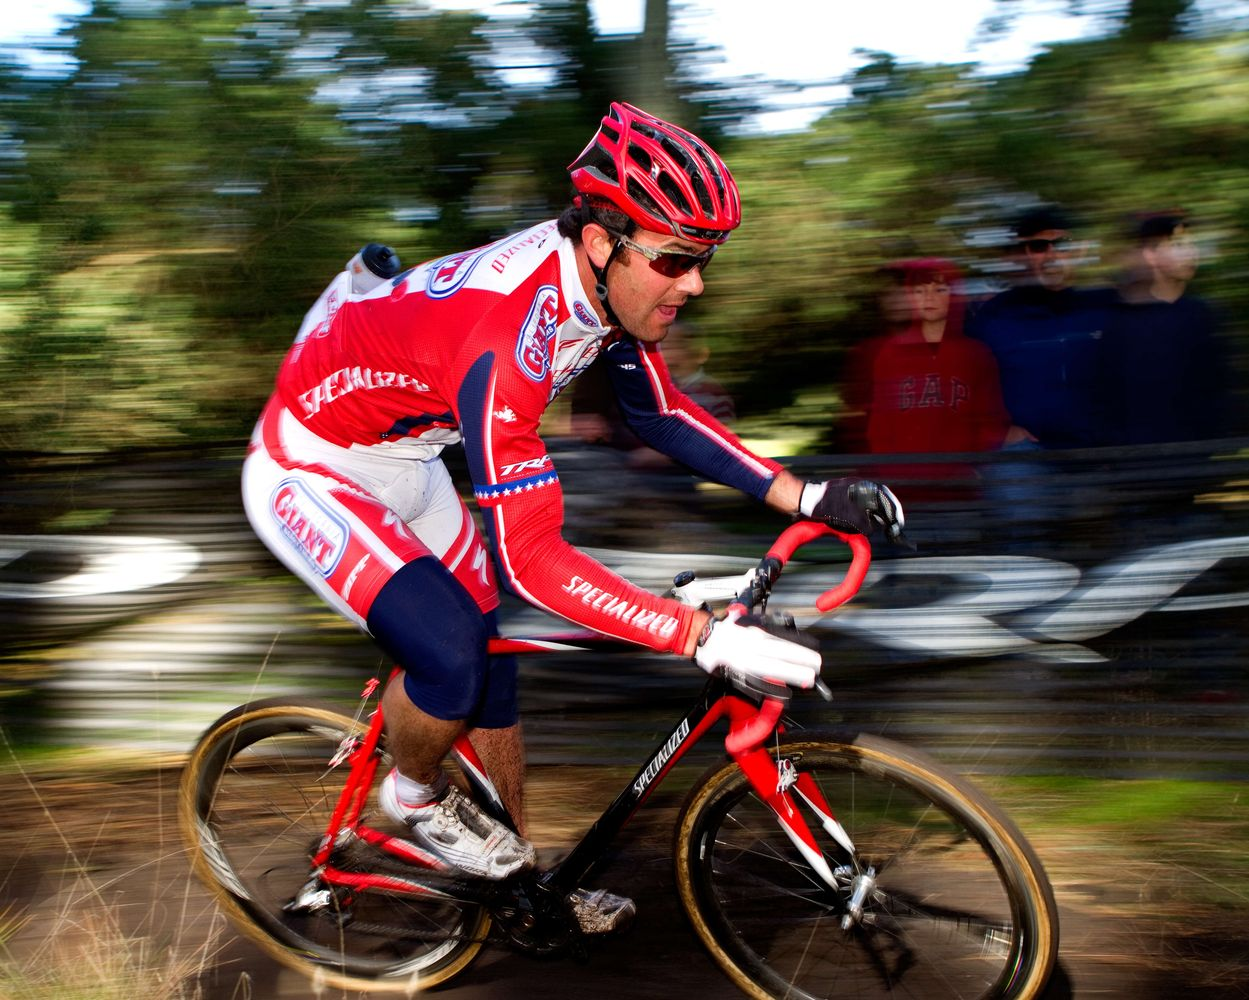 Justin Robinson is always a contender at Golden Gate Park and finished second. © Tim Westmore